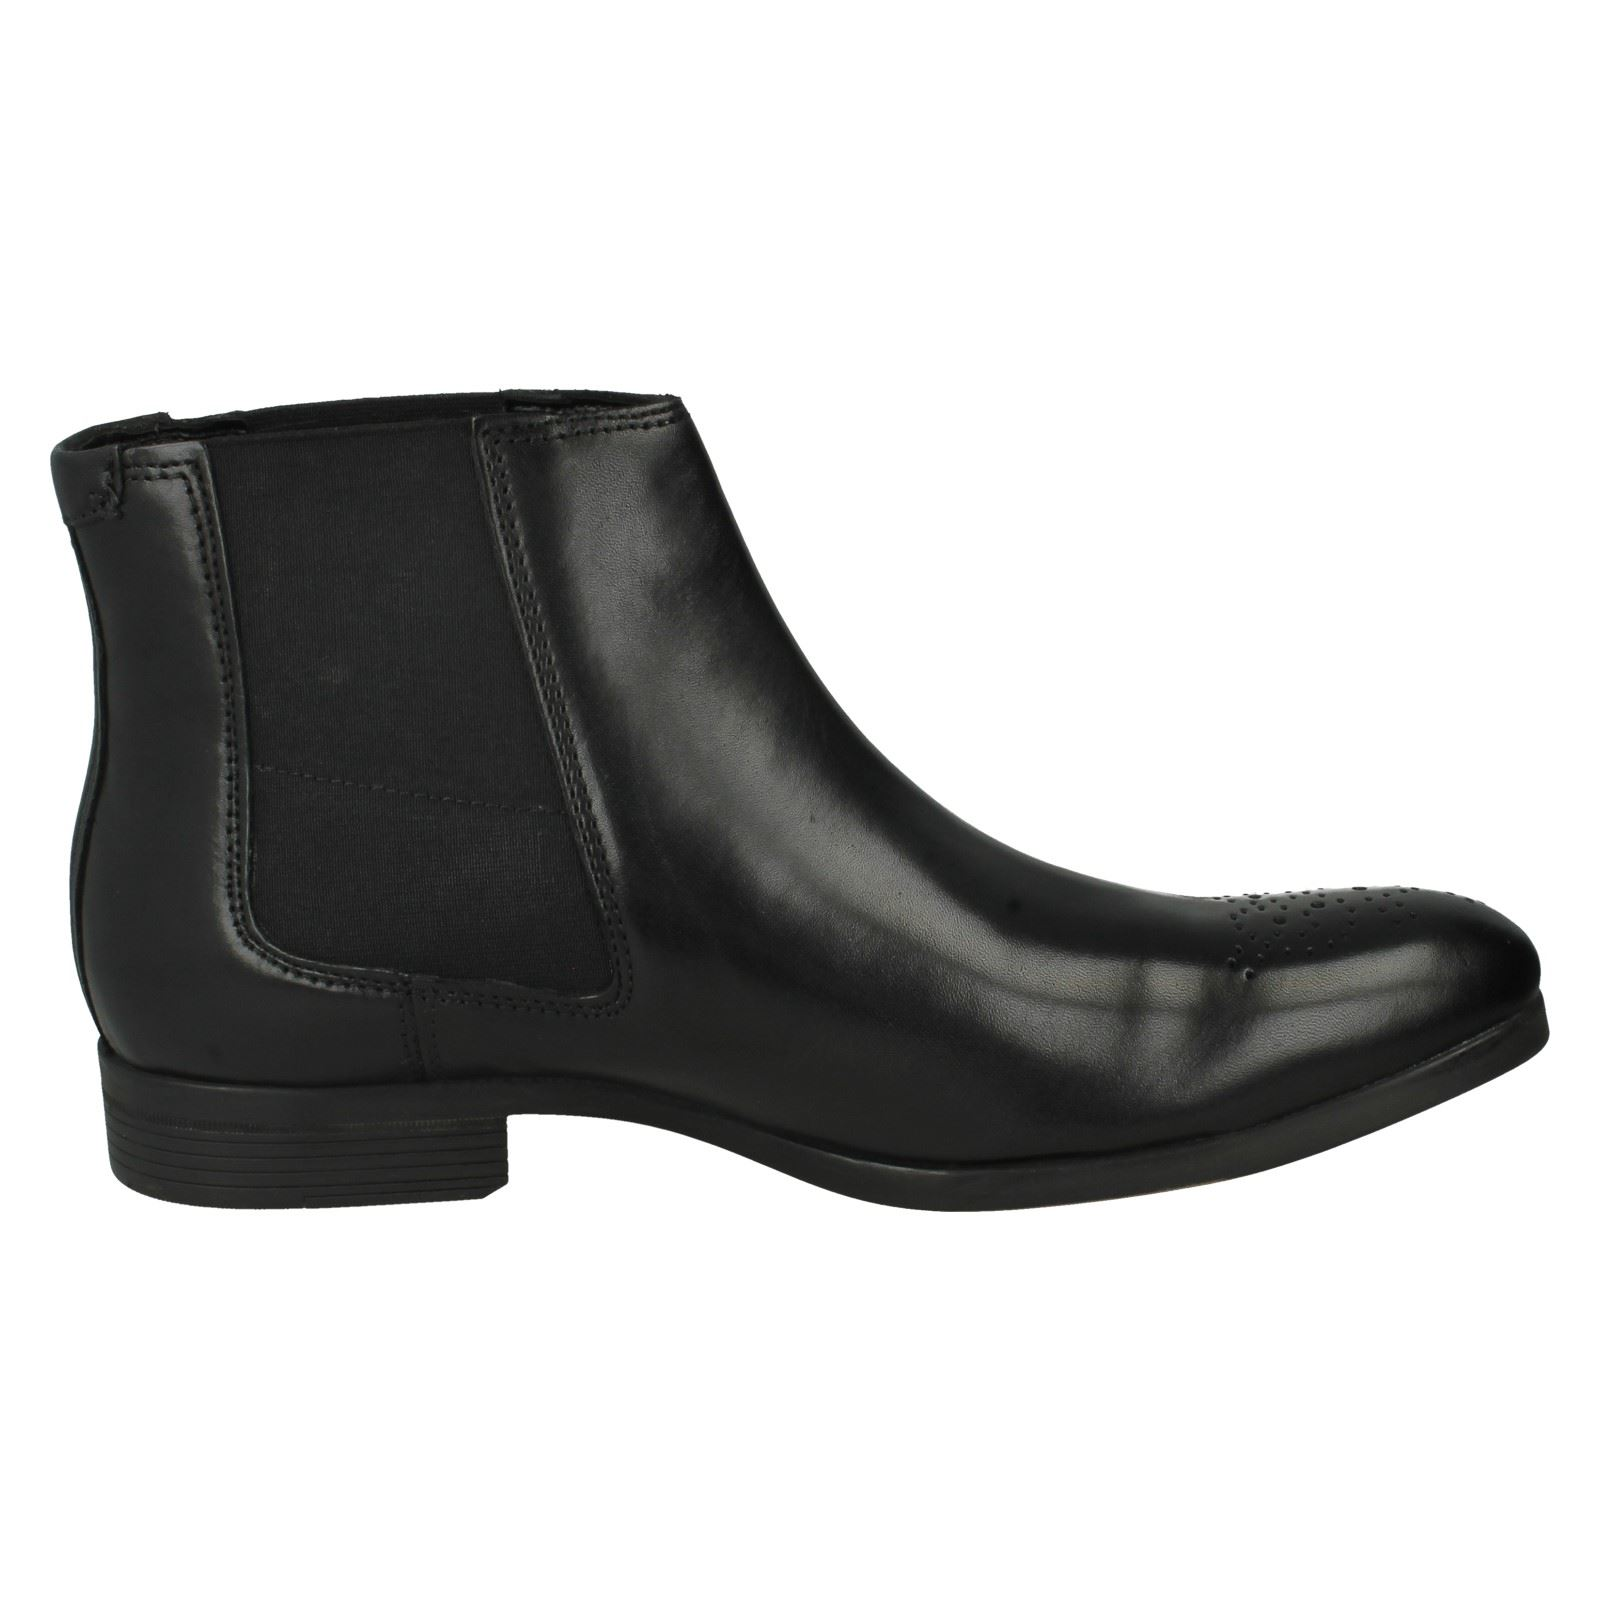 Uomo Clarks Style Leder Ankle Stiefel The Style Clarks - Gilmore Chelsea 985430